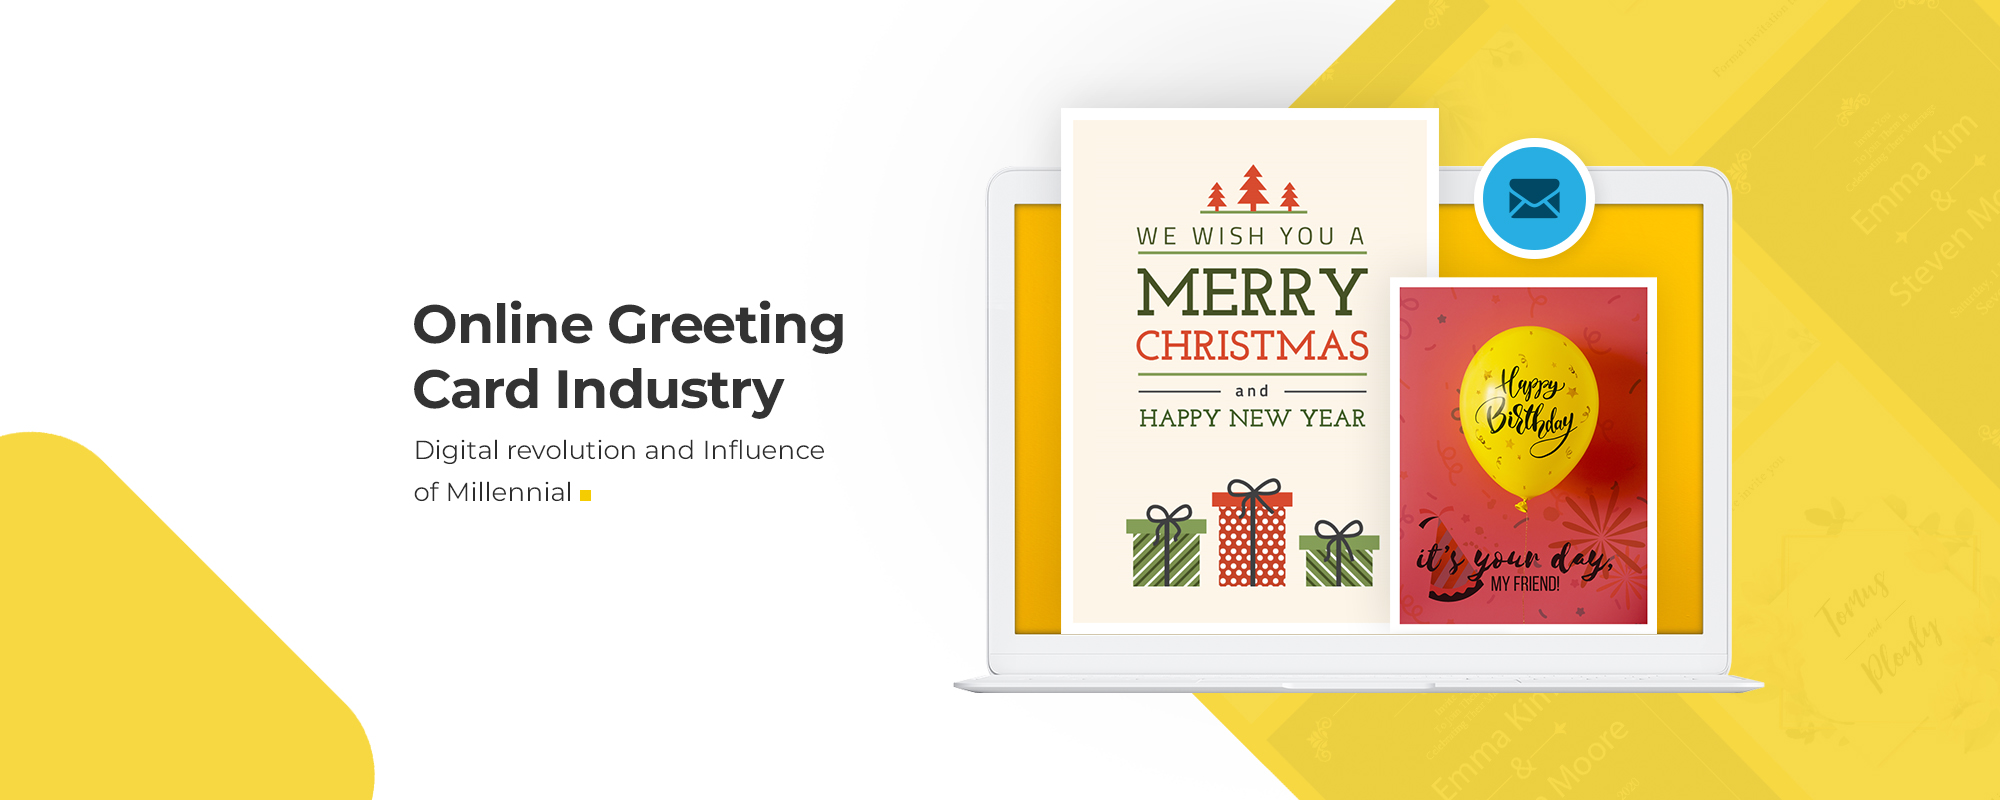 Online Greeting Card Business – Role Of Millennials and Website Features